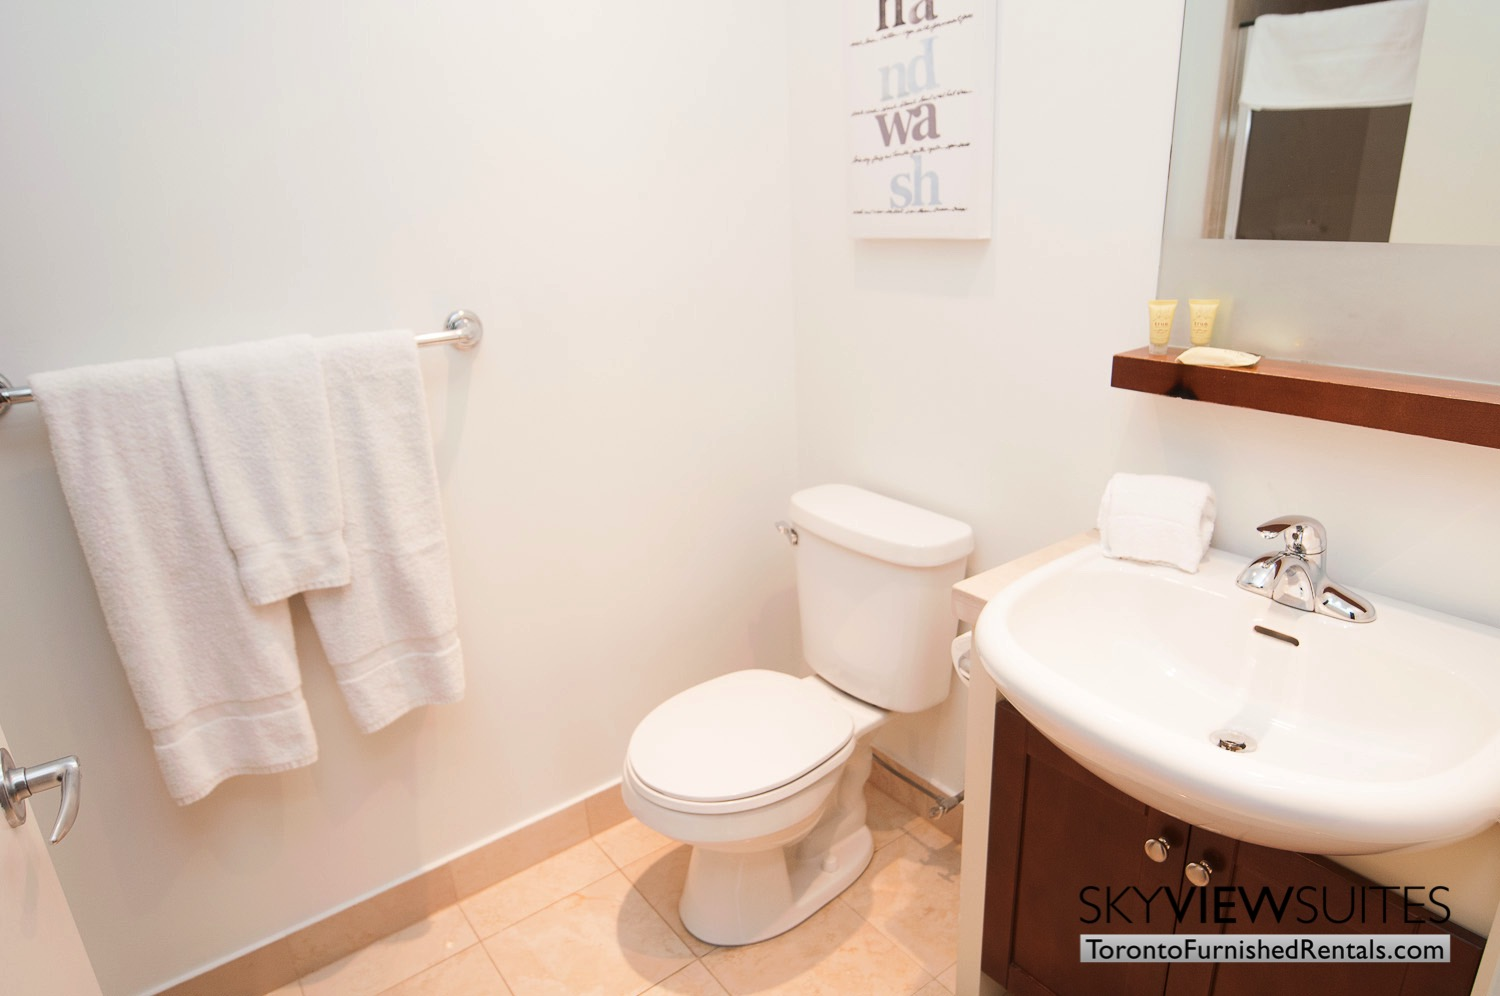 furnished rentals toronto waterfront bathroom